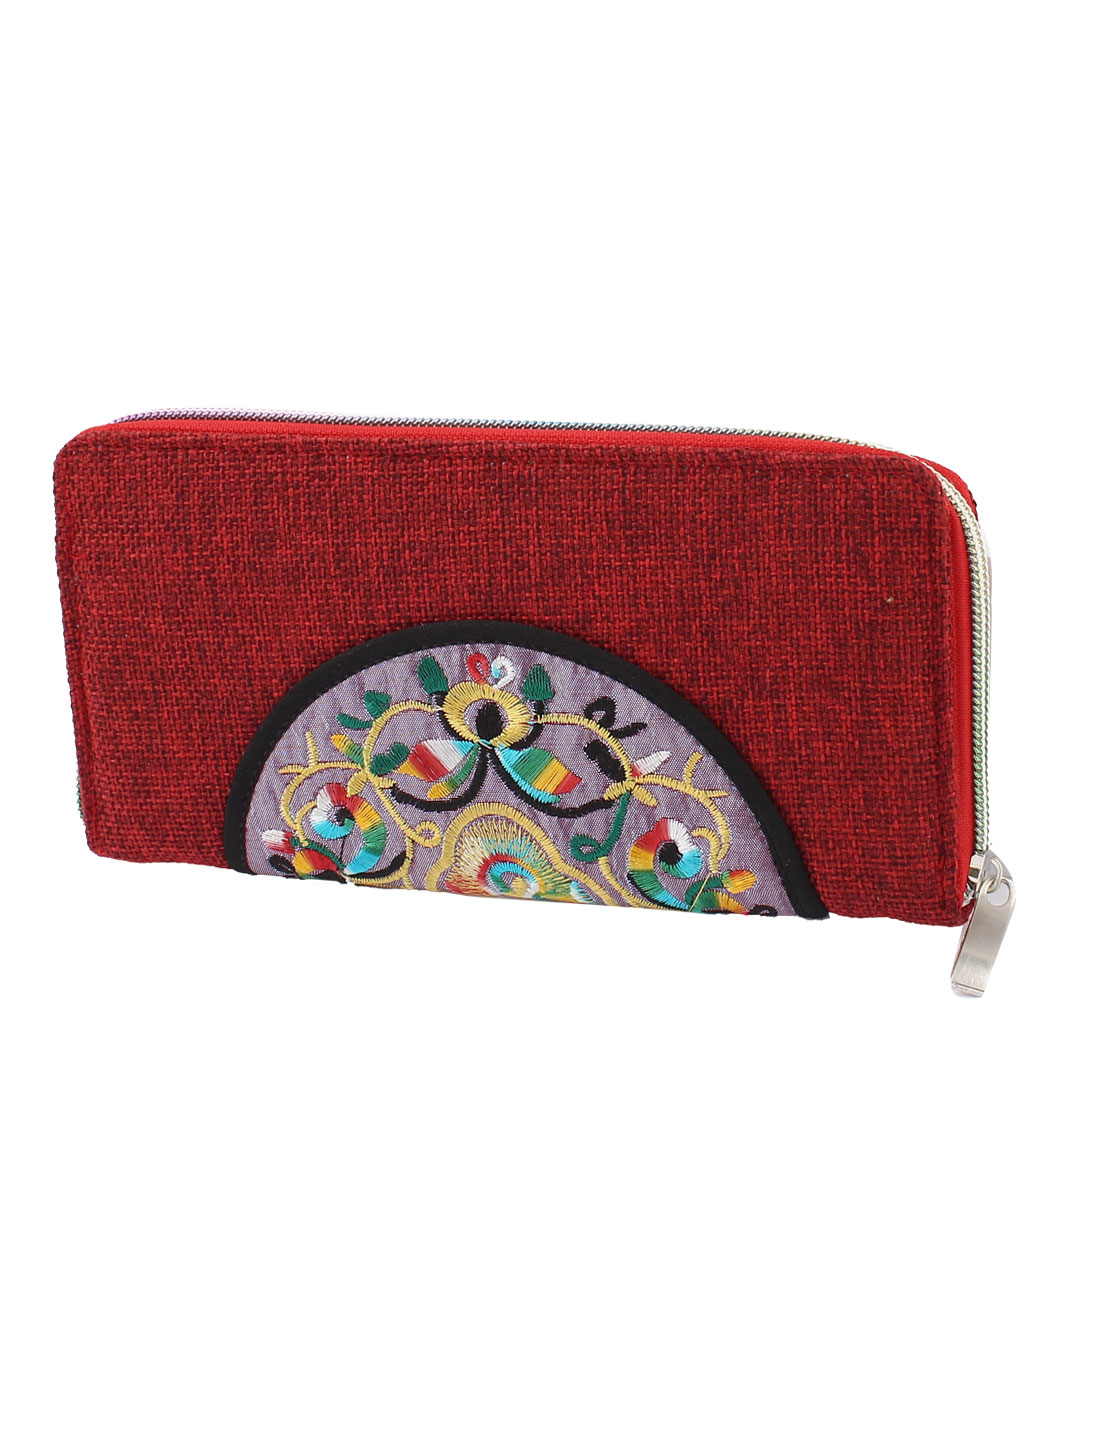 Dark Red Linen Rectangle Design Floral Pattern Zipper Closure Wallet Purse for Ladies